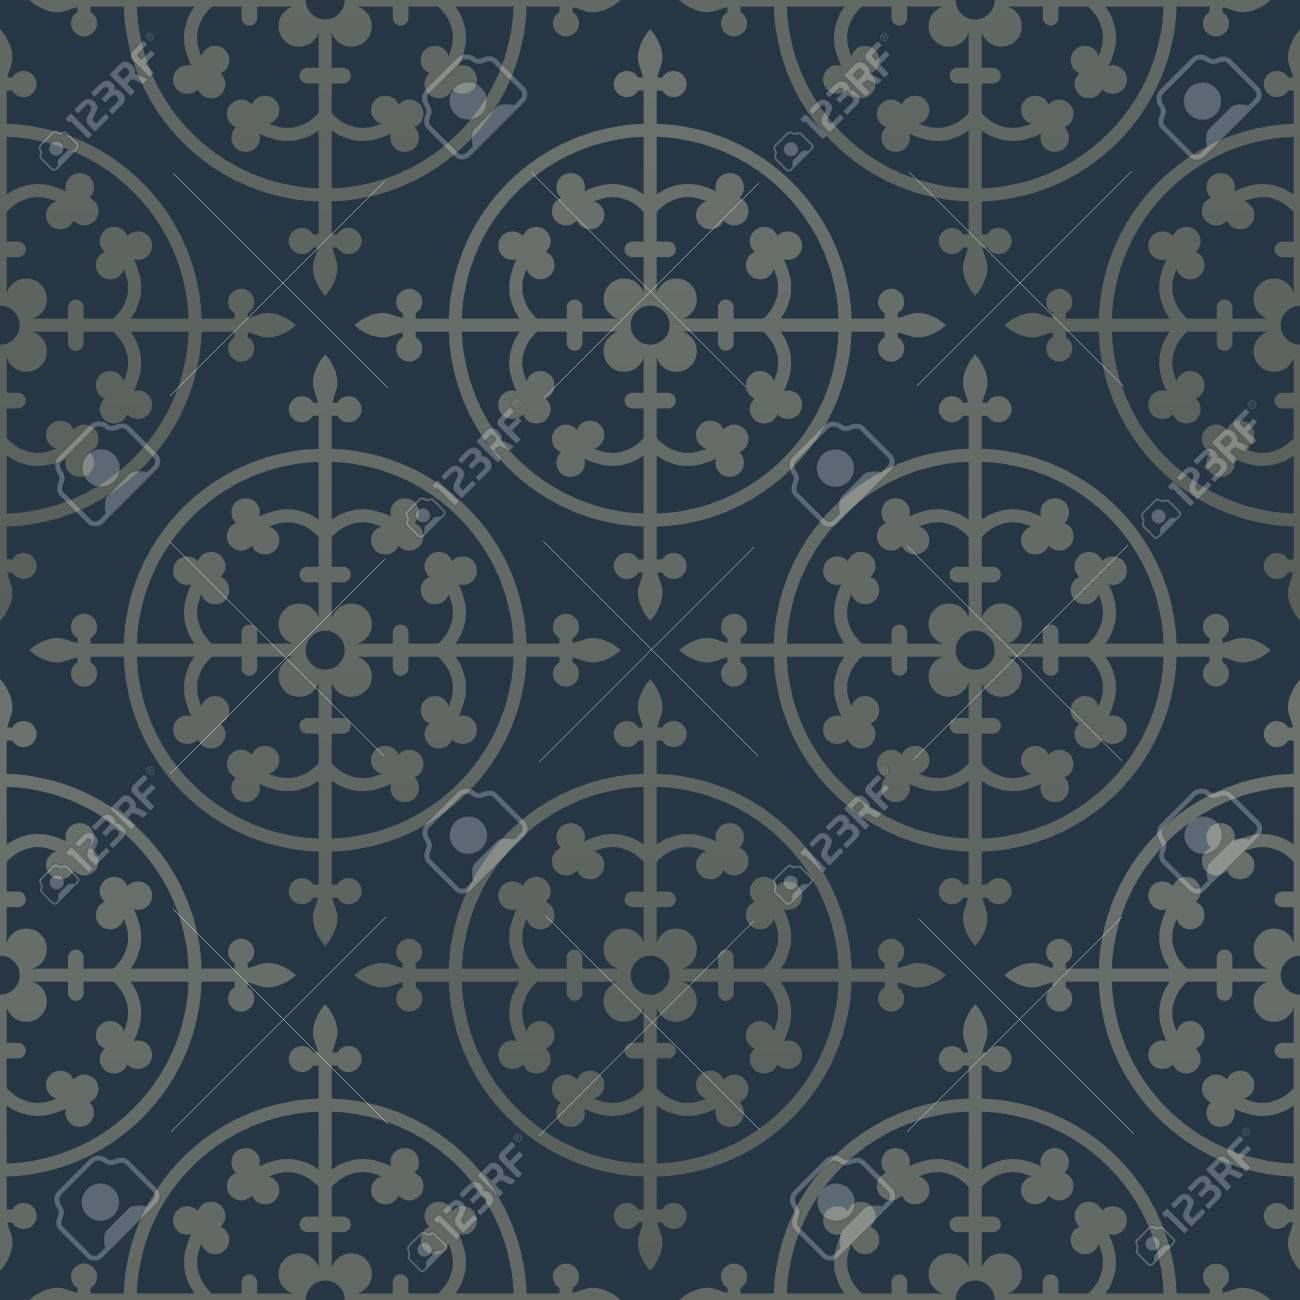 Silver Seamless Pattern On A Dark Blue Background Royal Elements In Gothic Style